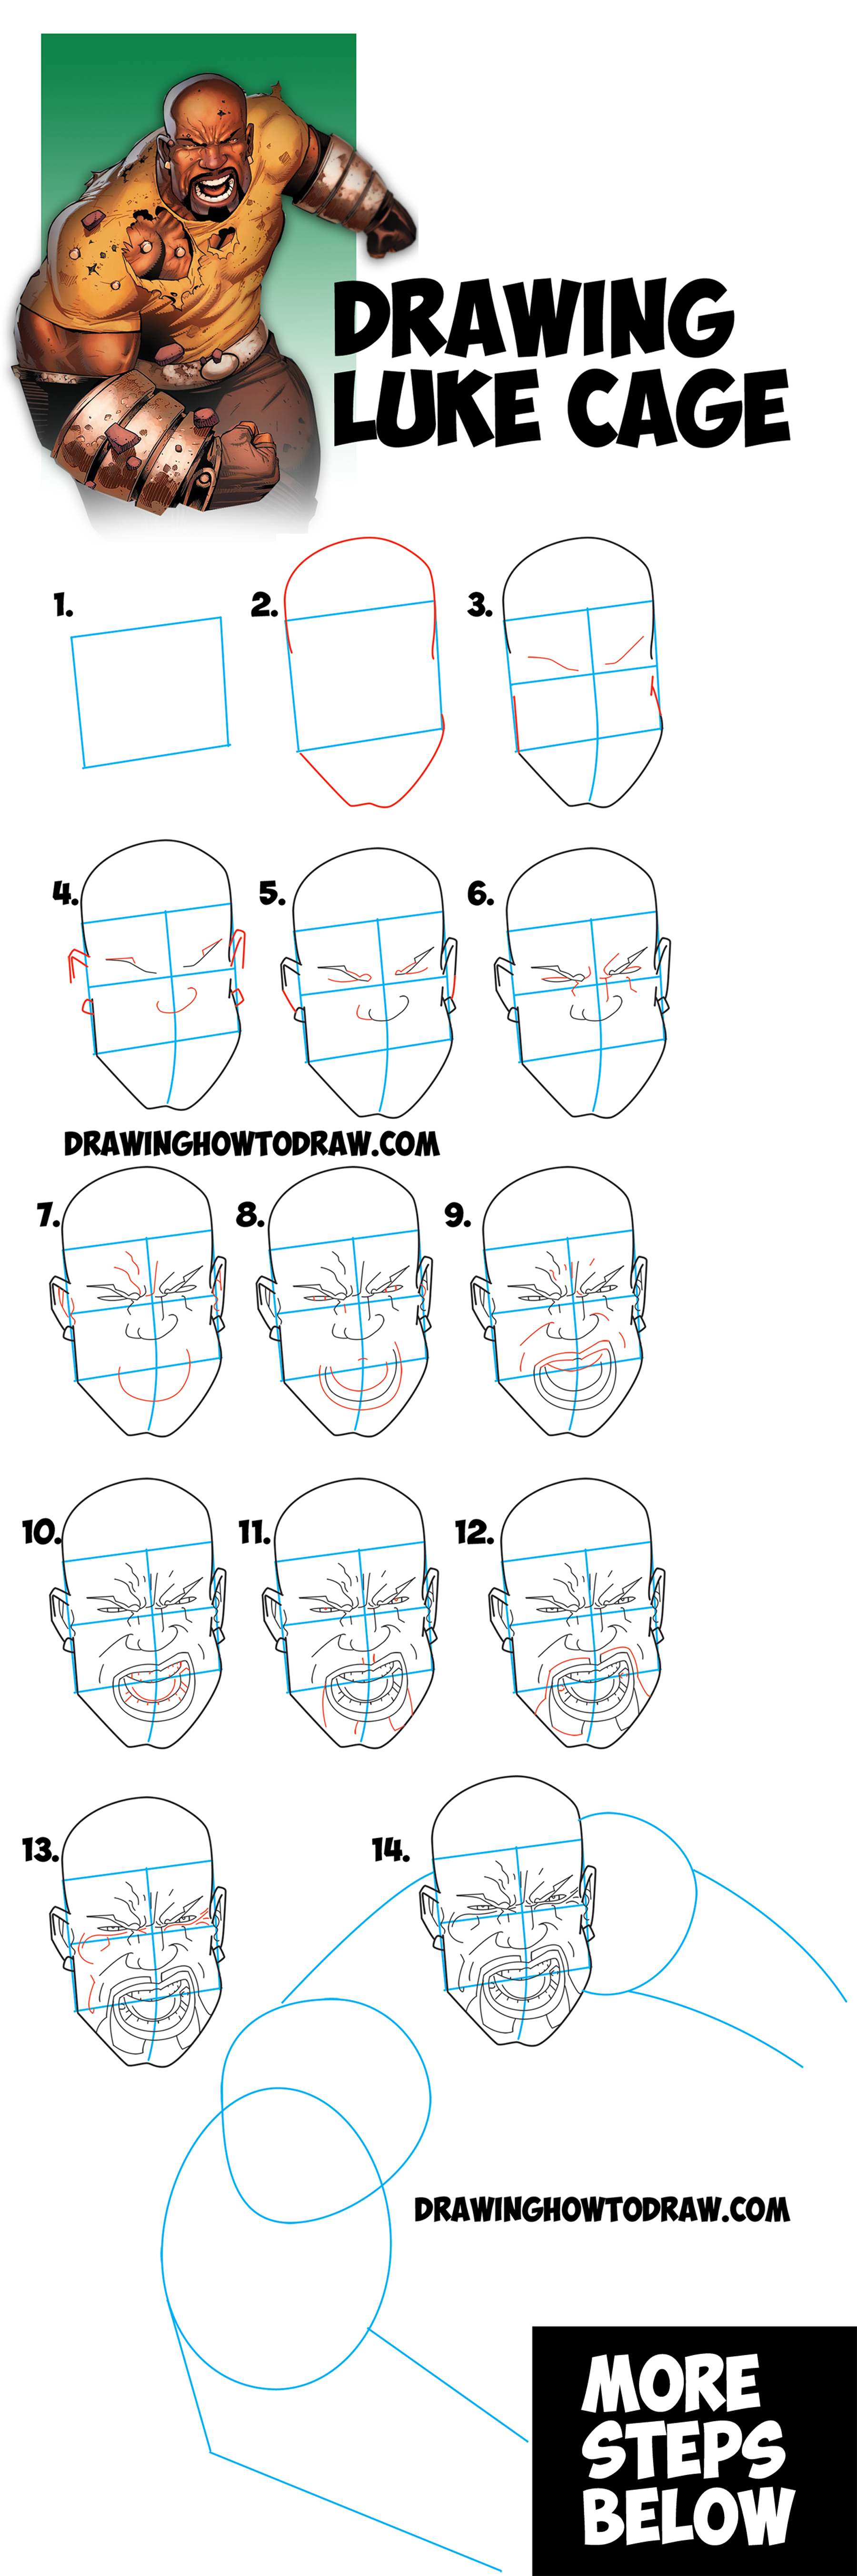 1800x5412 How To Draw Luke Cage From Marvel And Netflix's Luke Cage Series